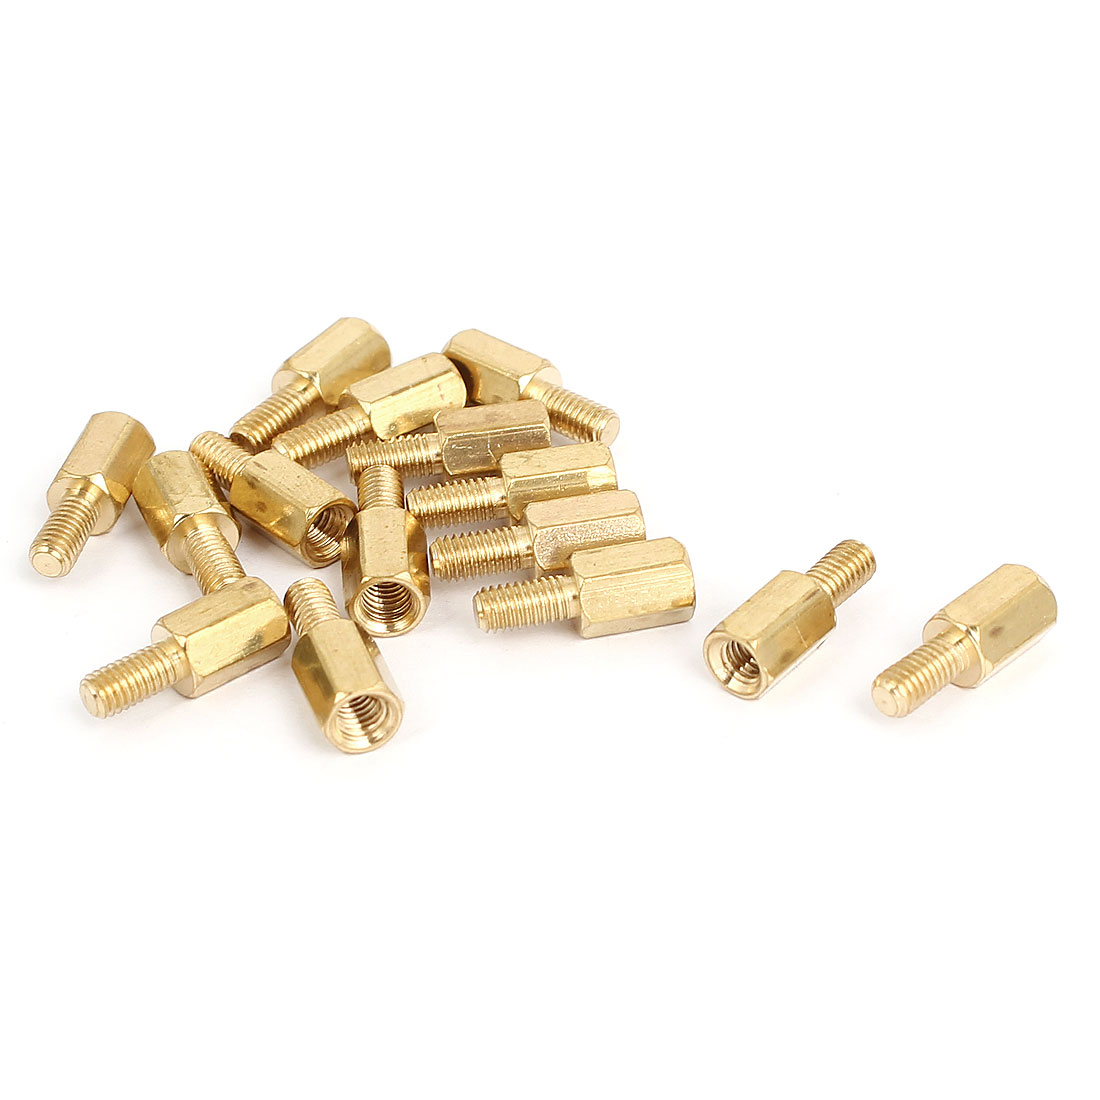 M3 Male to Female Thread Brass Hexagonal PCB Spacer Standoff Support 7mm+6mm 15pcs